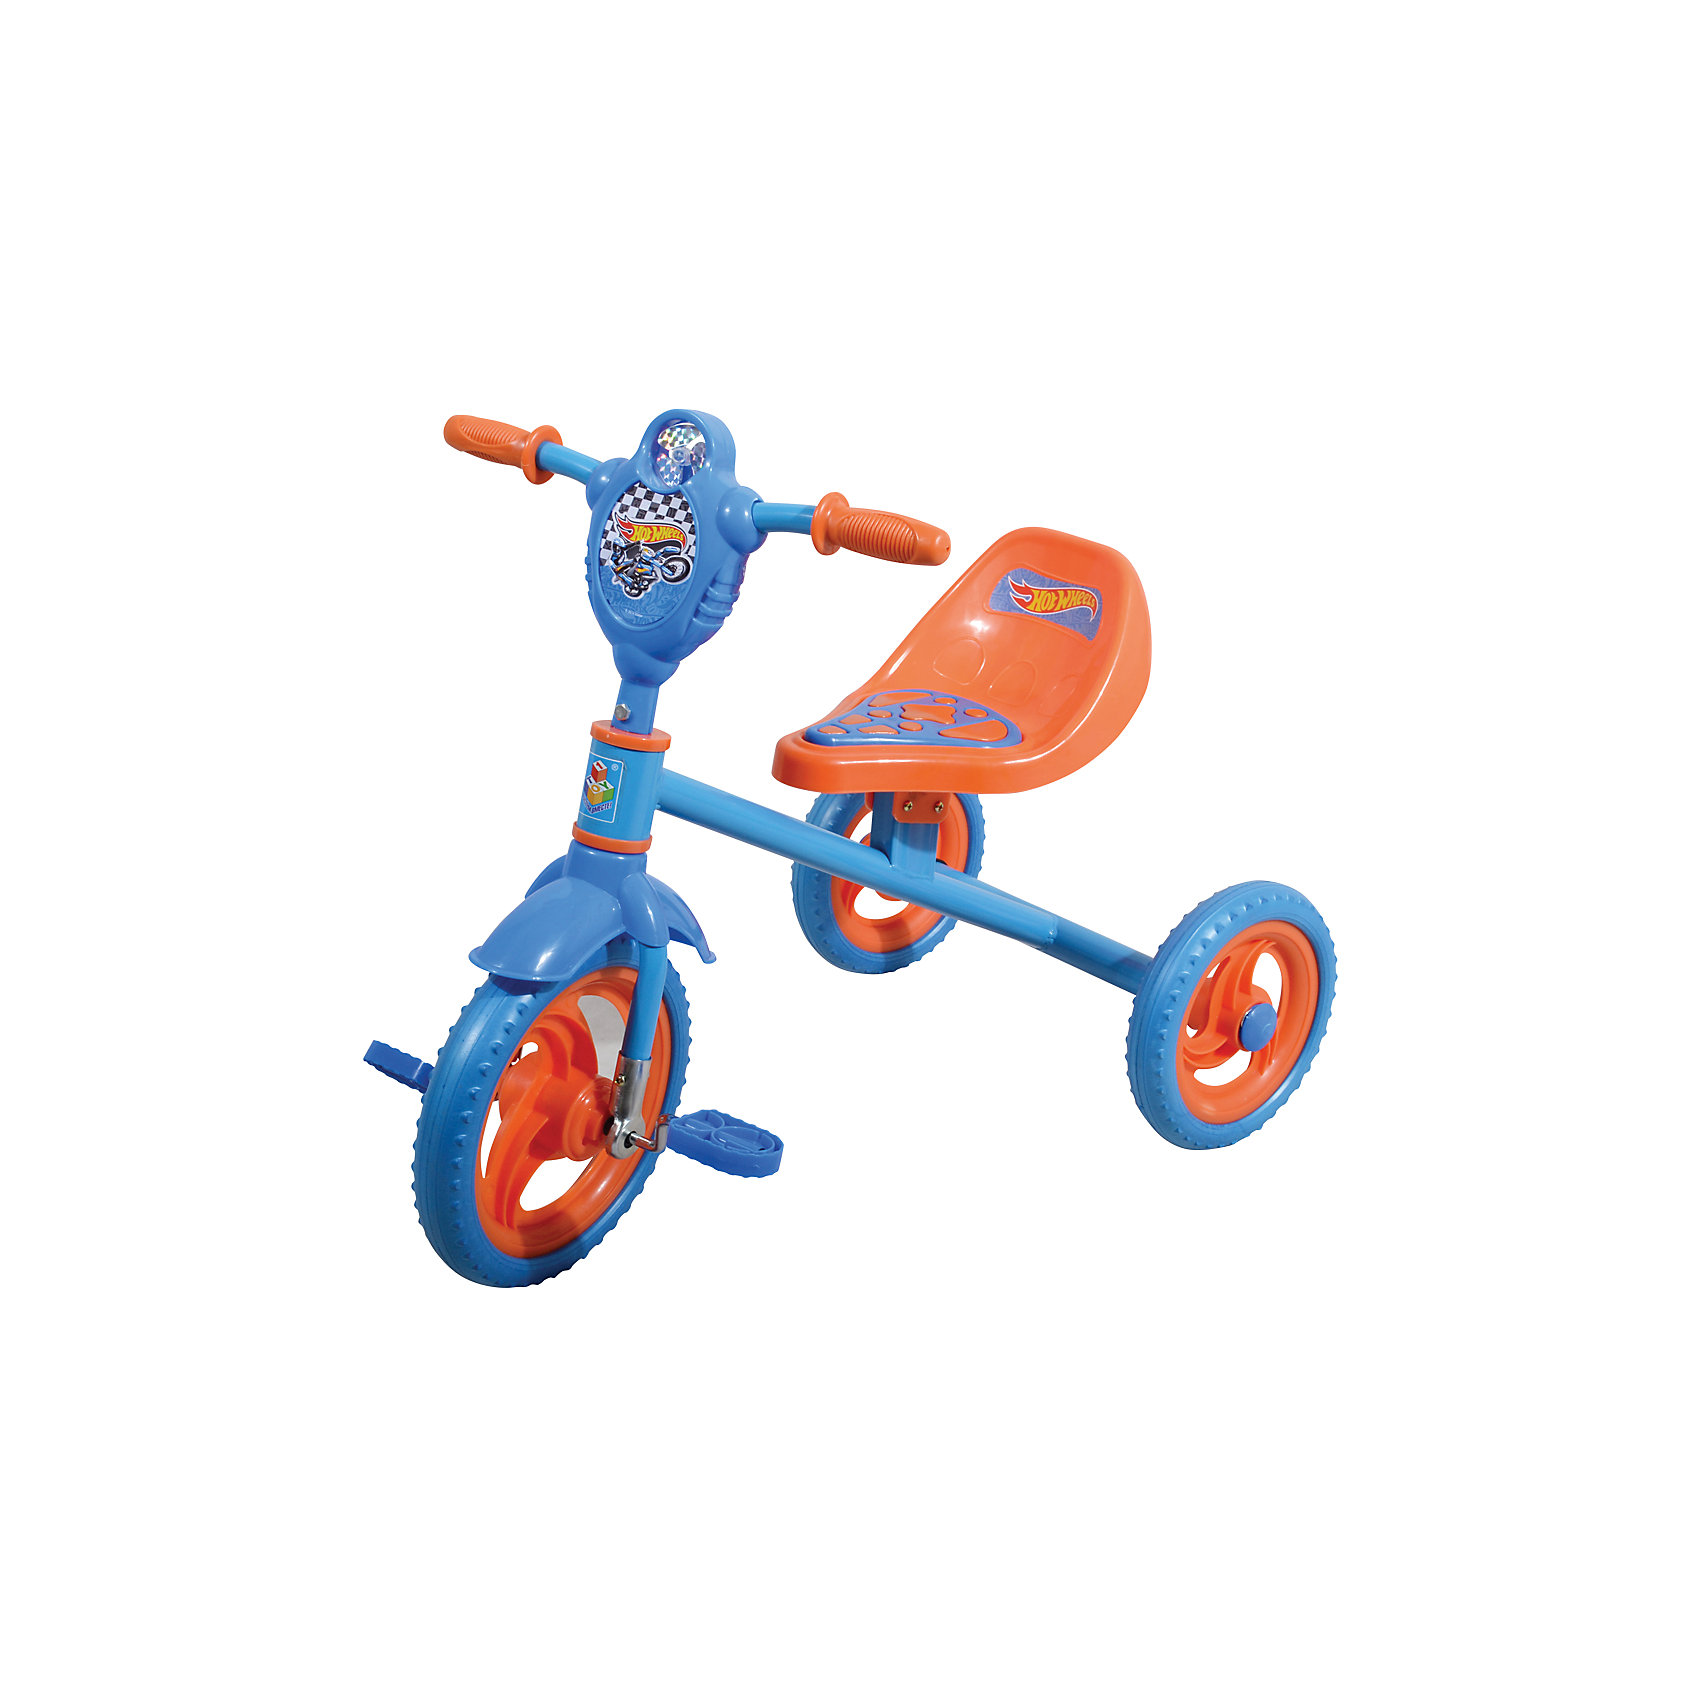 ��������� ������������ Hot Wheels, 1Toy (-)